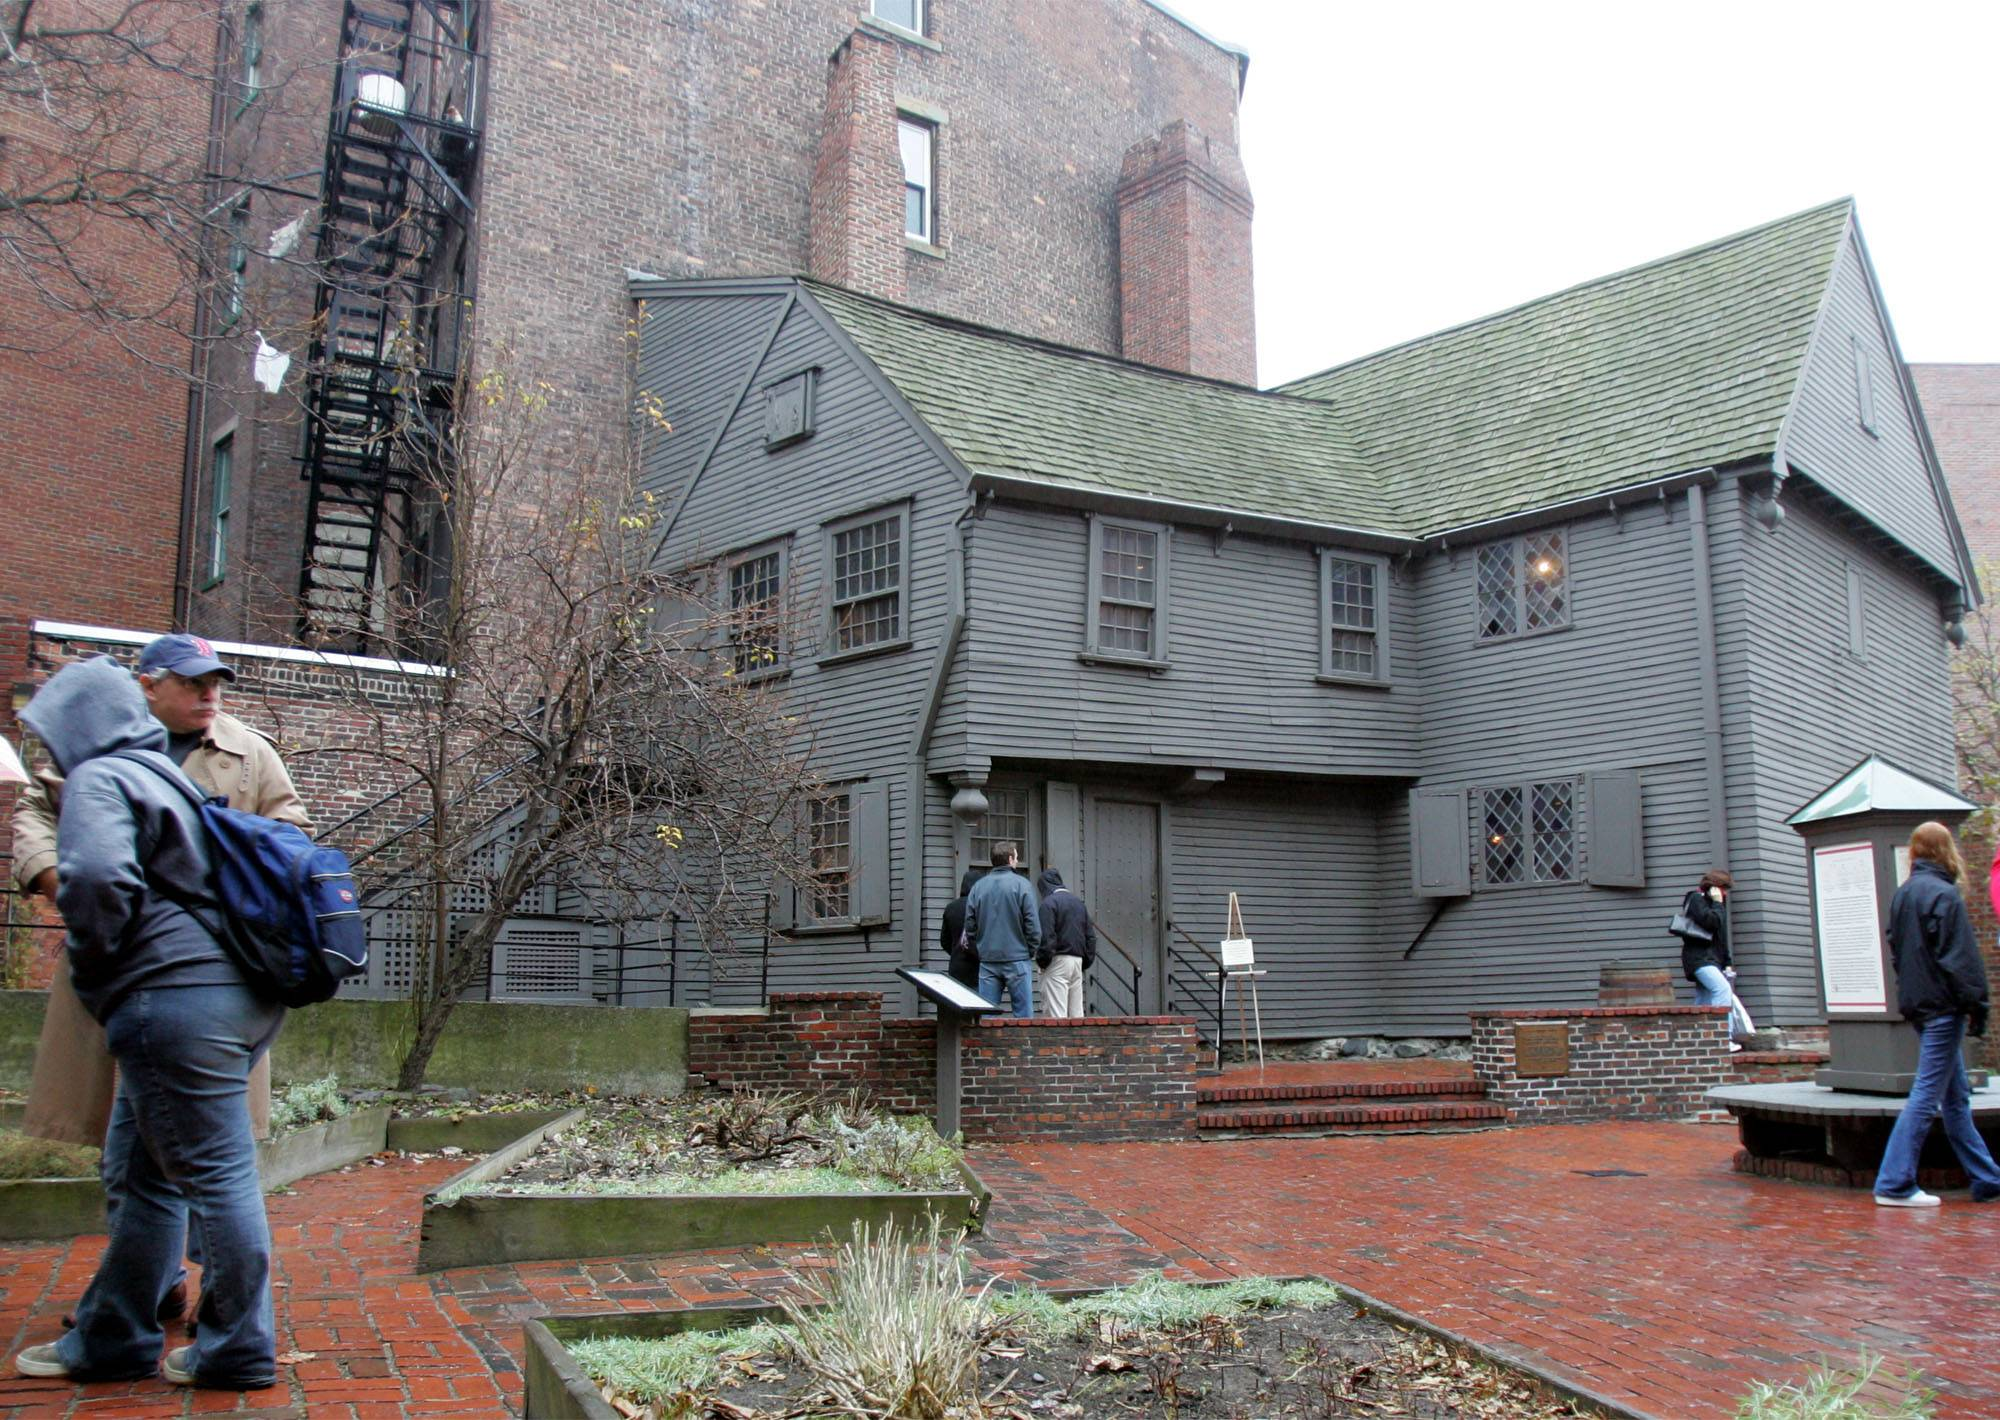 Tourists visit the Paul Revere House in the North End neighborhood of Boston. The city's most trekked tourist attraction is the 2.5-mile bricked pathway that takes visitors on a tour of Boston's past. The route starts in the heart of the city at Boston Common and winds its way over the Charles River to Charlestown to the site of the Battle of Bunker Hill. The 1680 wooden home of Paul Revere is the oldest building in downtown still in existence.